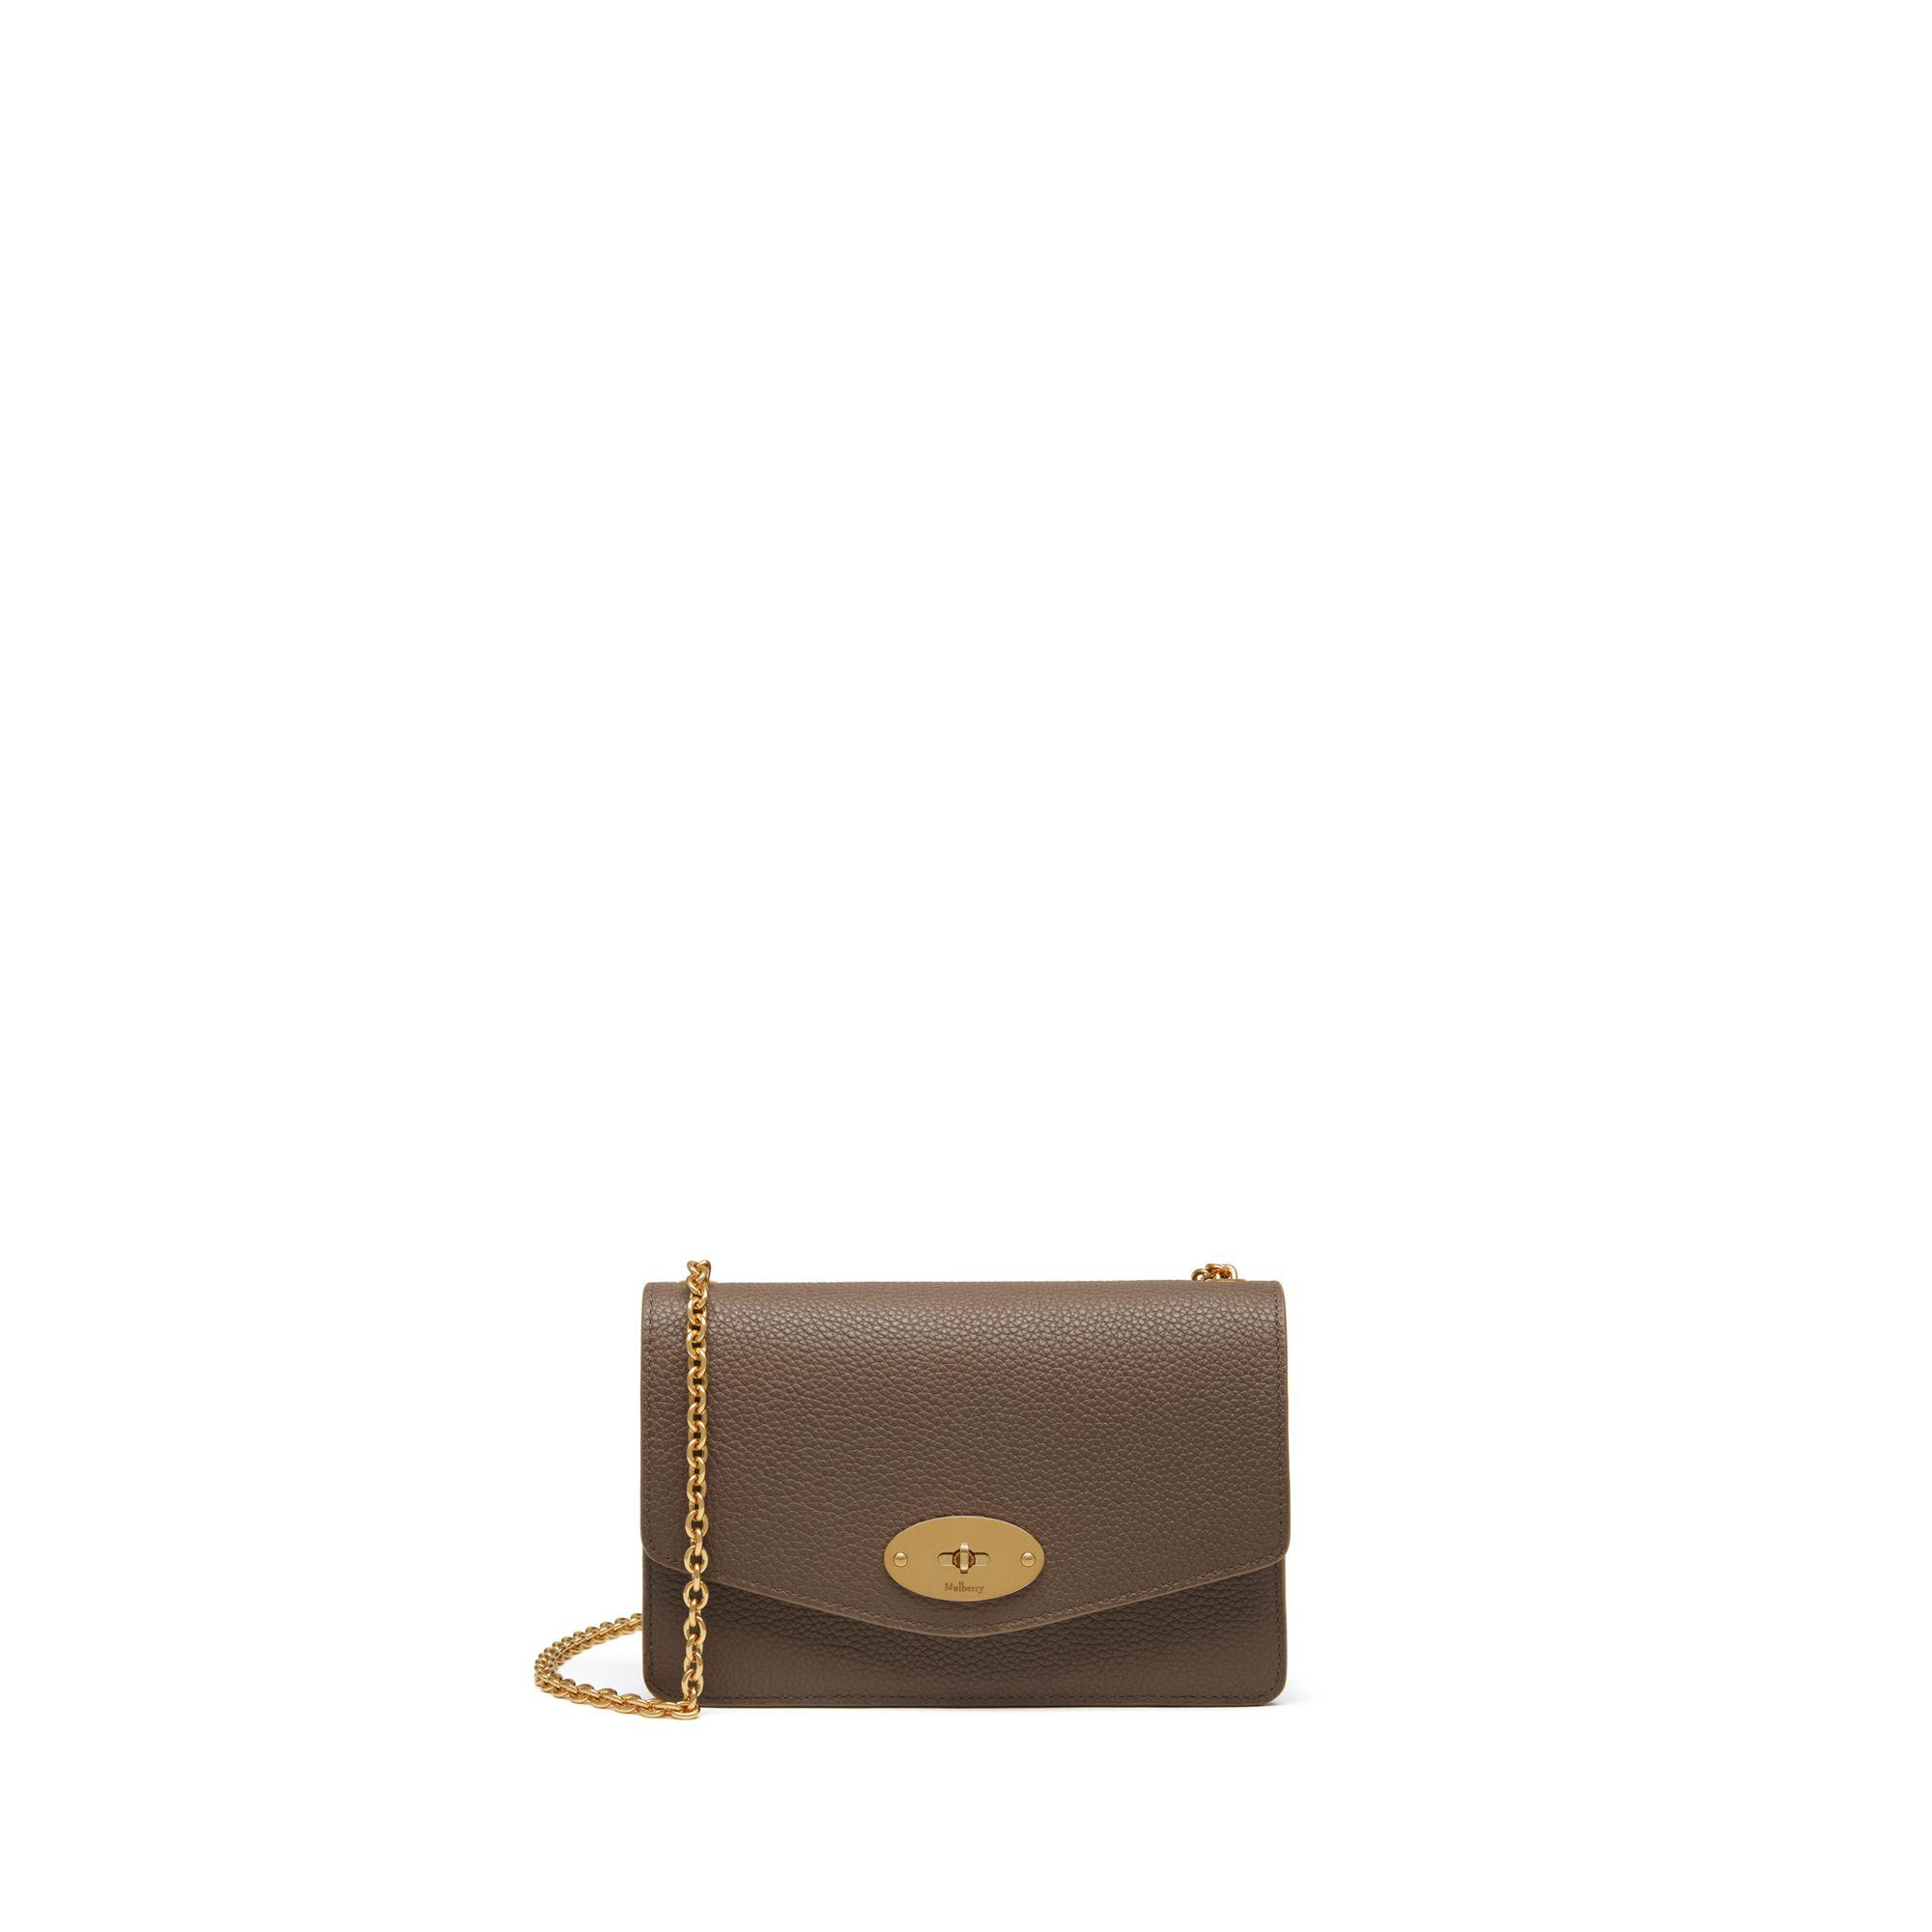 Lyst - Mulberry Small Darley In Clay Small Classic Grain in Brown 370bb080fcf61